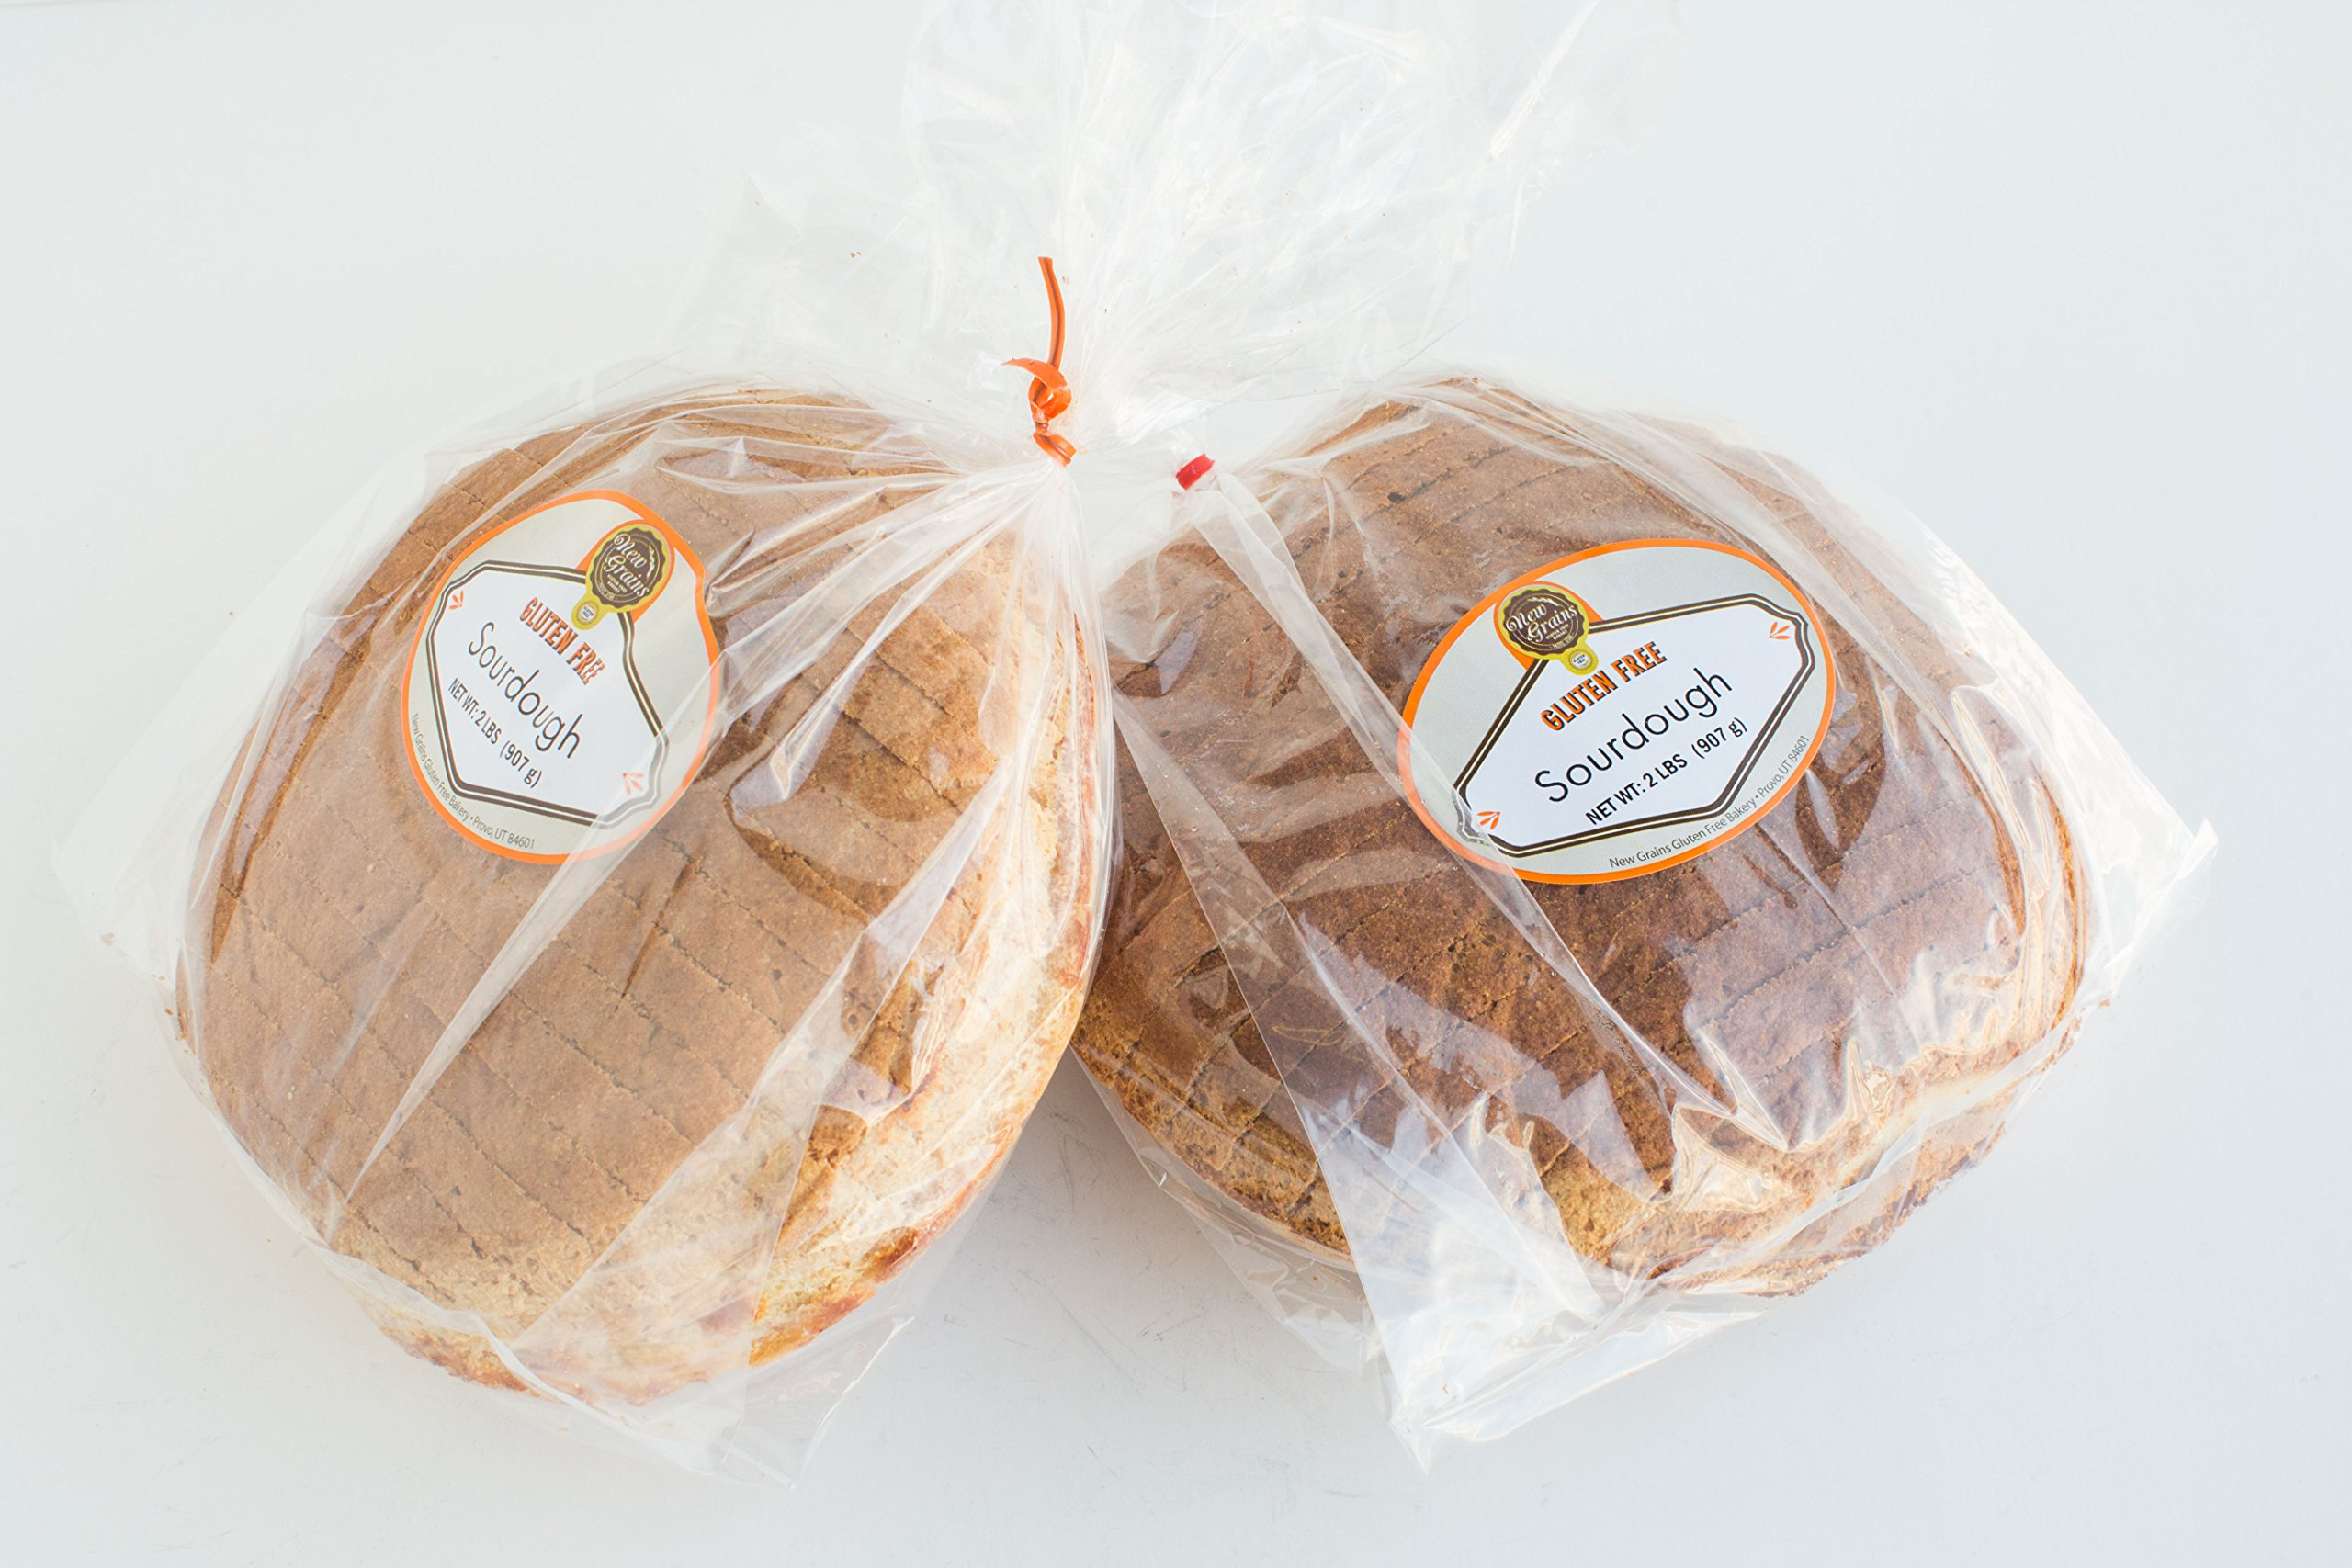 New Grains Gluten Free Sourdough (2), Croutons and Cookie Pack by New Grains Gluten Free Bakery